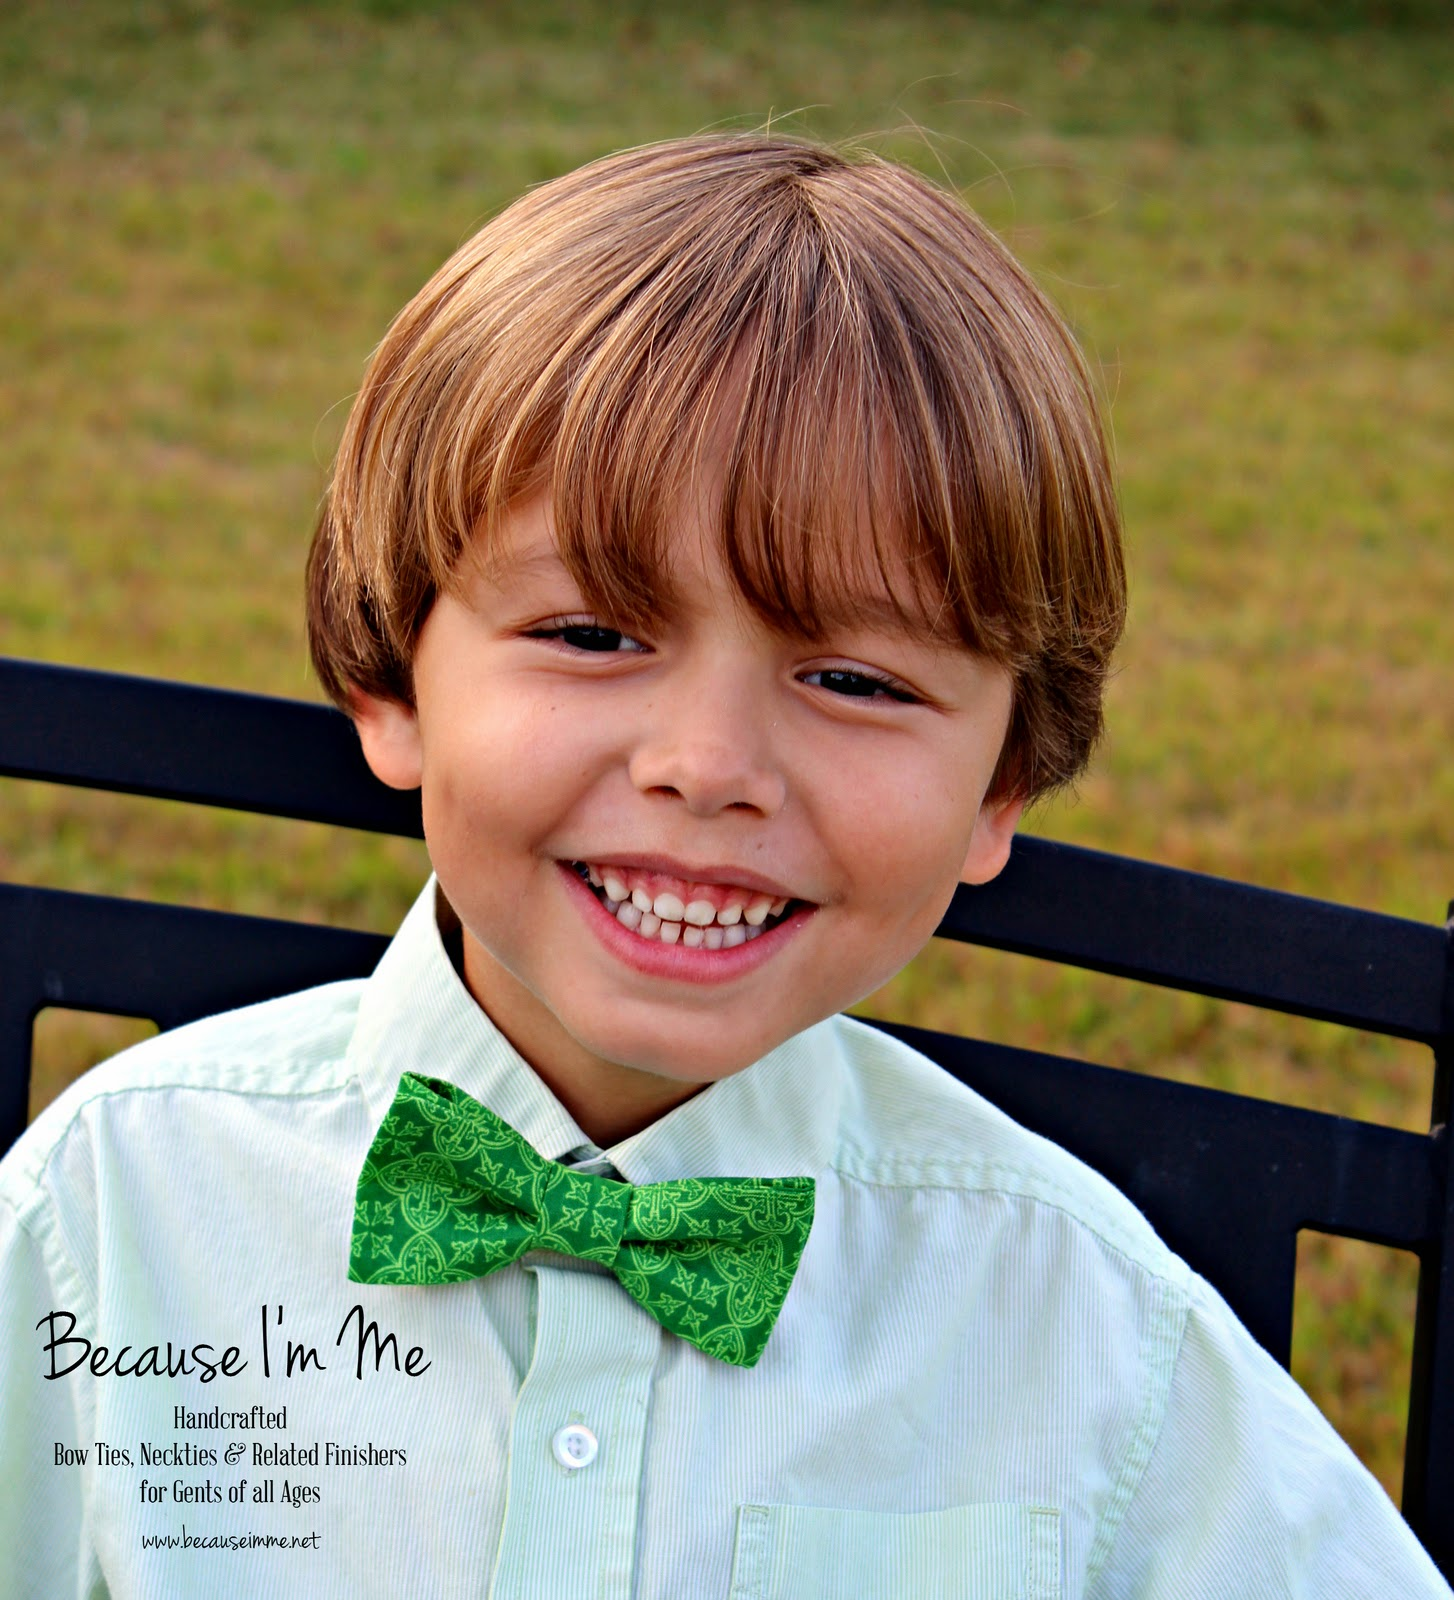 Irish Green Gaelic Print Bow Tie for St. Patrick's Day, festive tie for men and boys